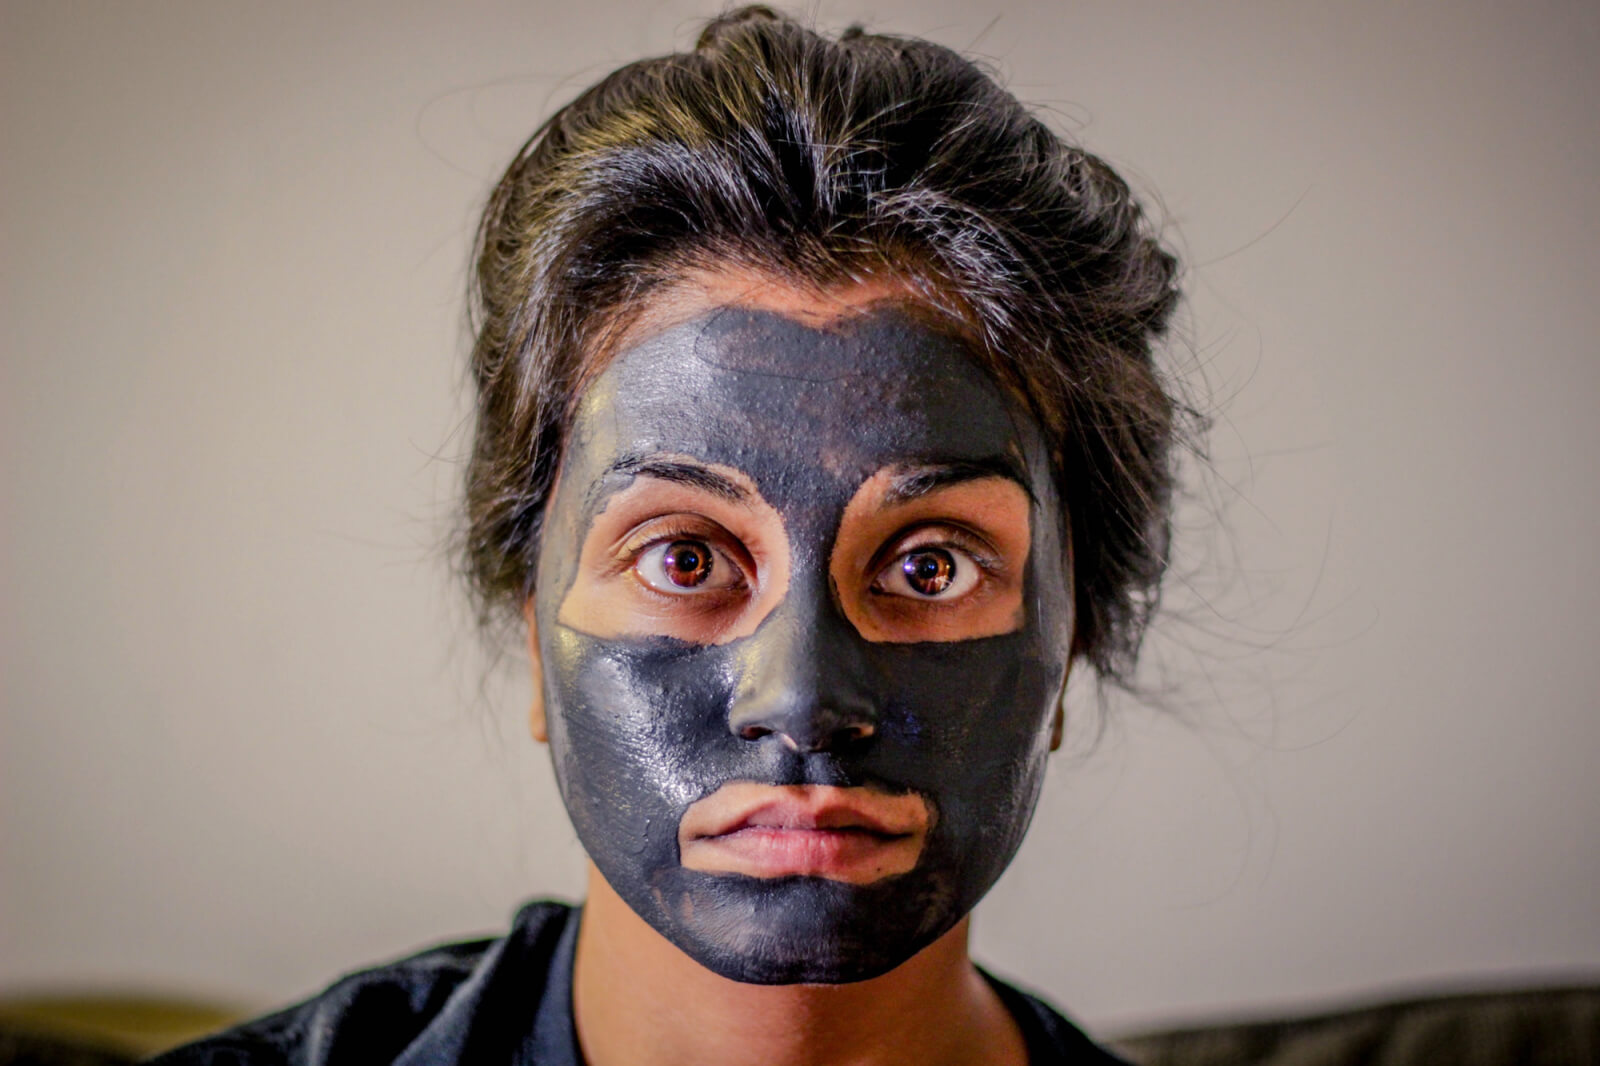 La-Biosthetique-Masque-Mer-et-Beaute-Modelling-Mask-with-Algae-and-Sea-Water-abloomnova.net_-1600x1066 How to apply a face mask